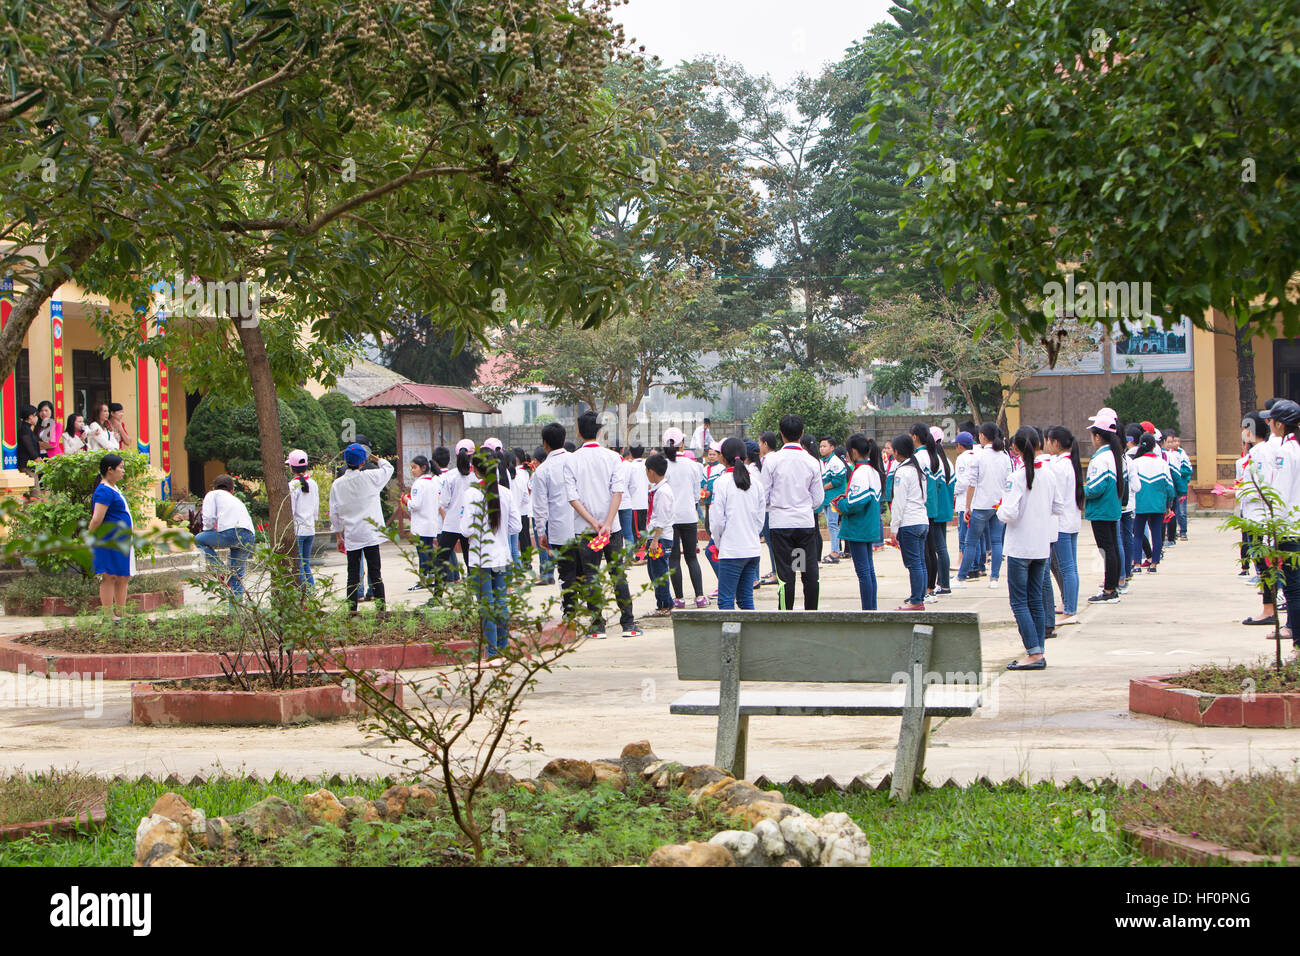 Students, morning assembly. - Stock Image